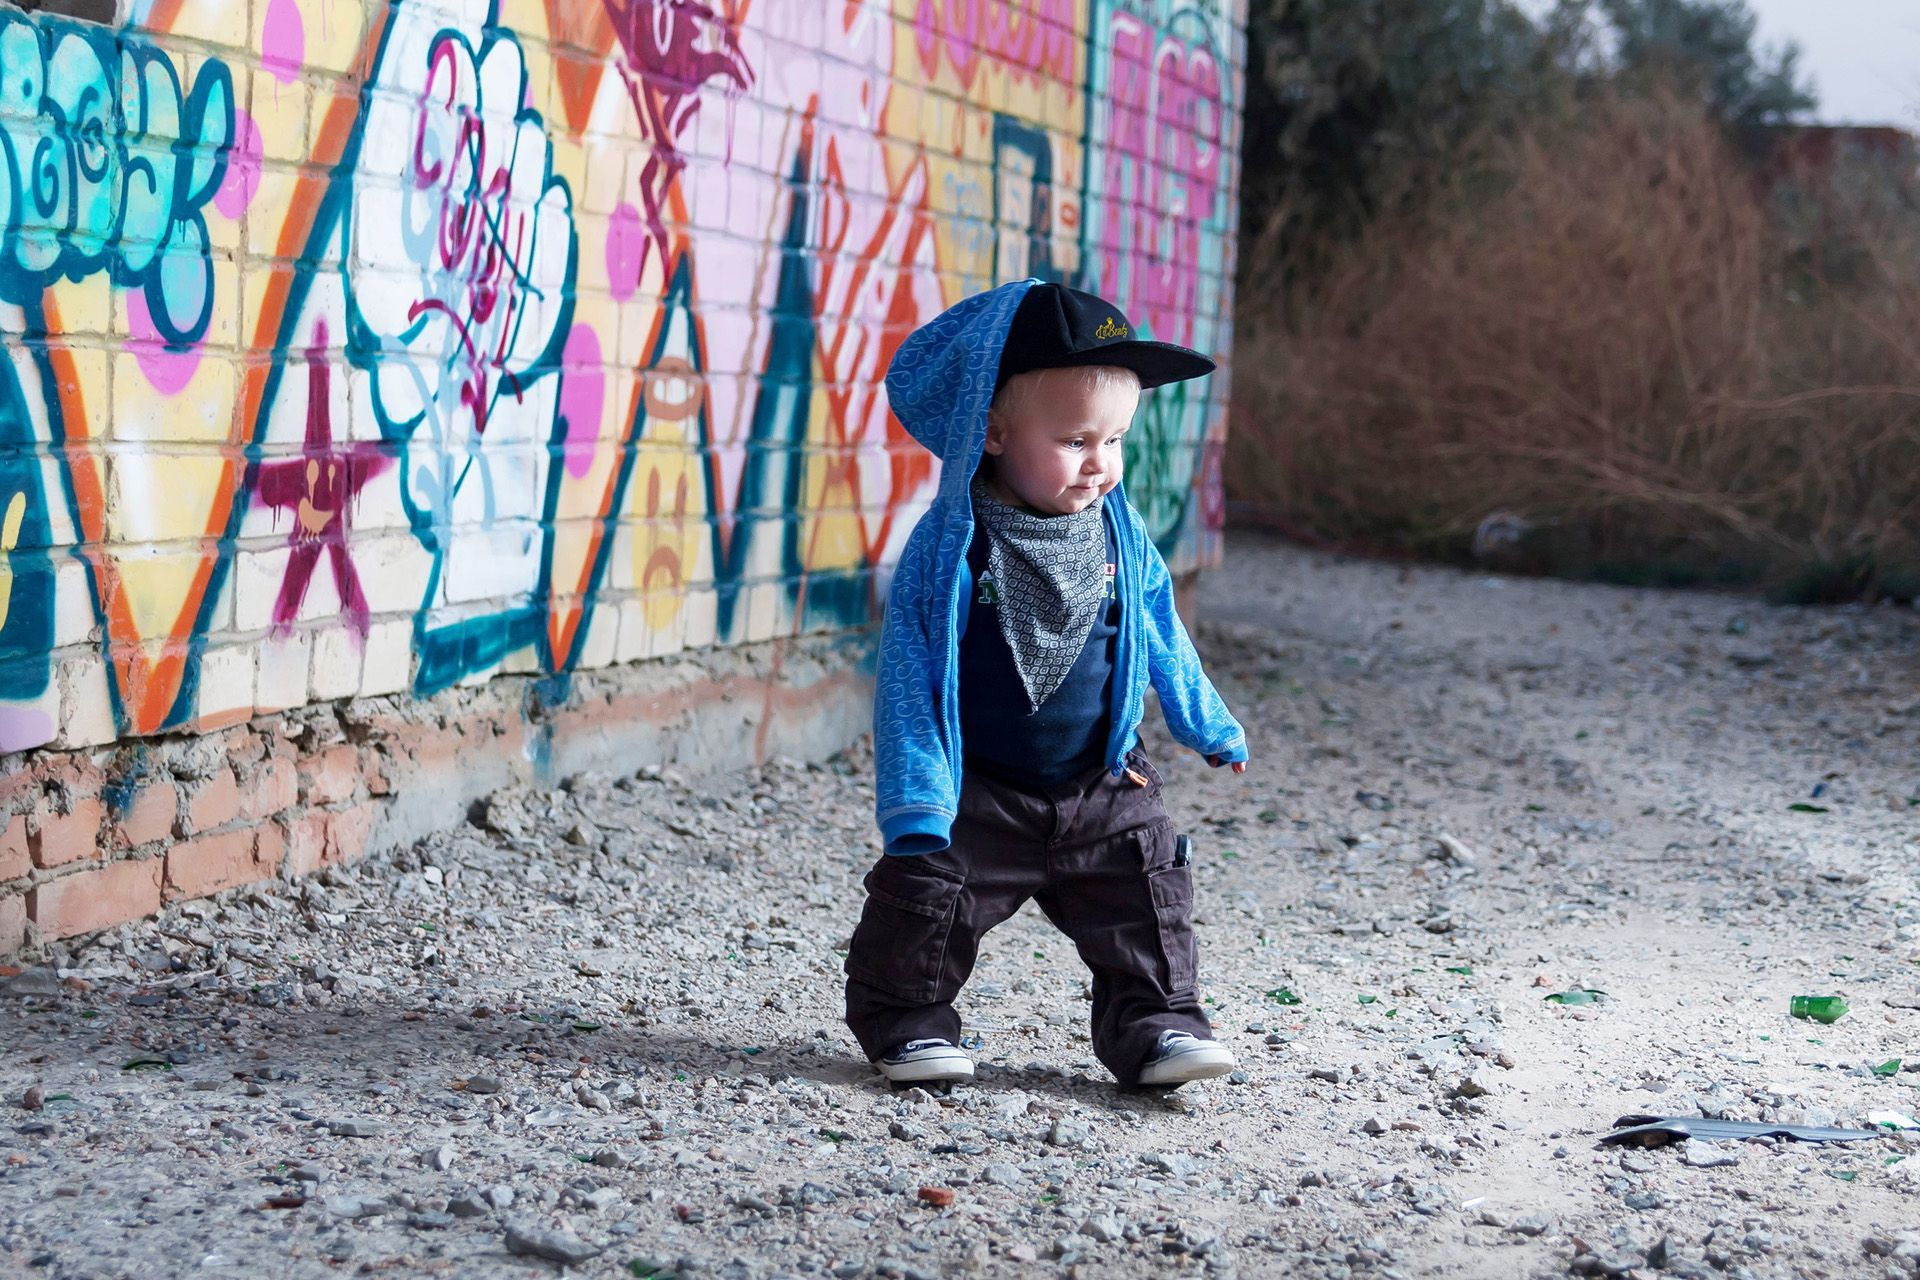 Young Street Dance